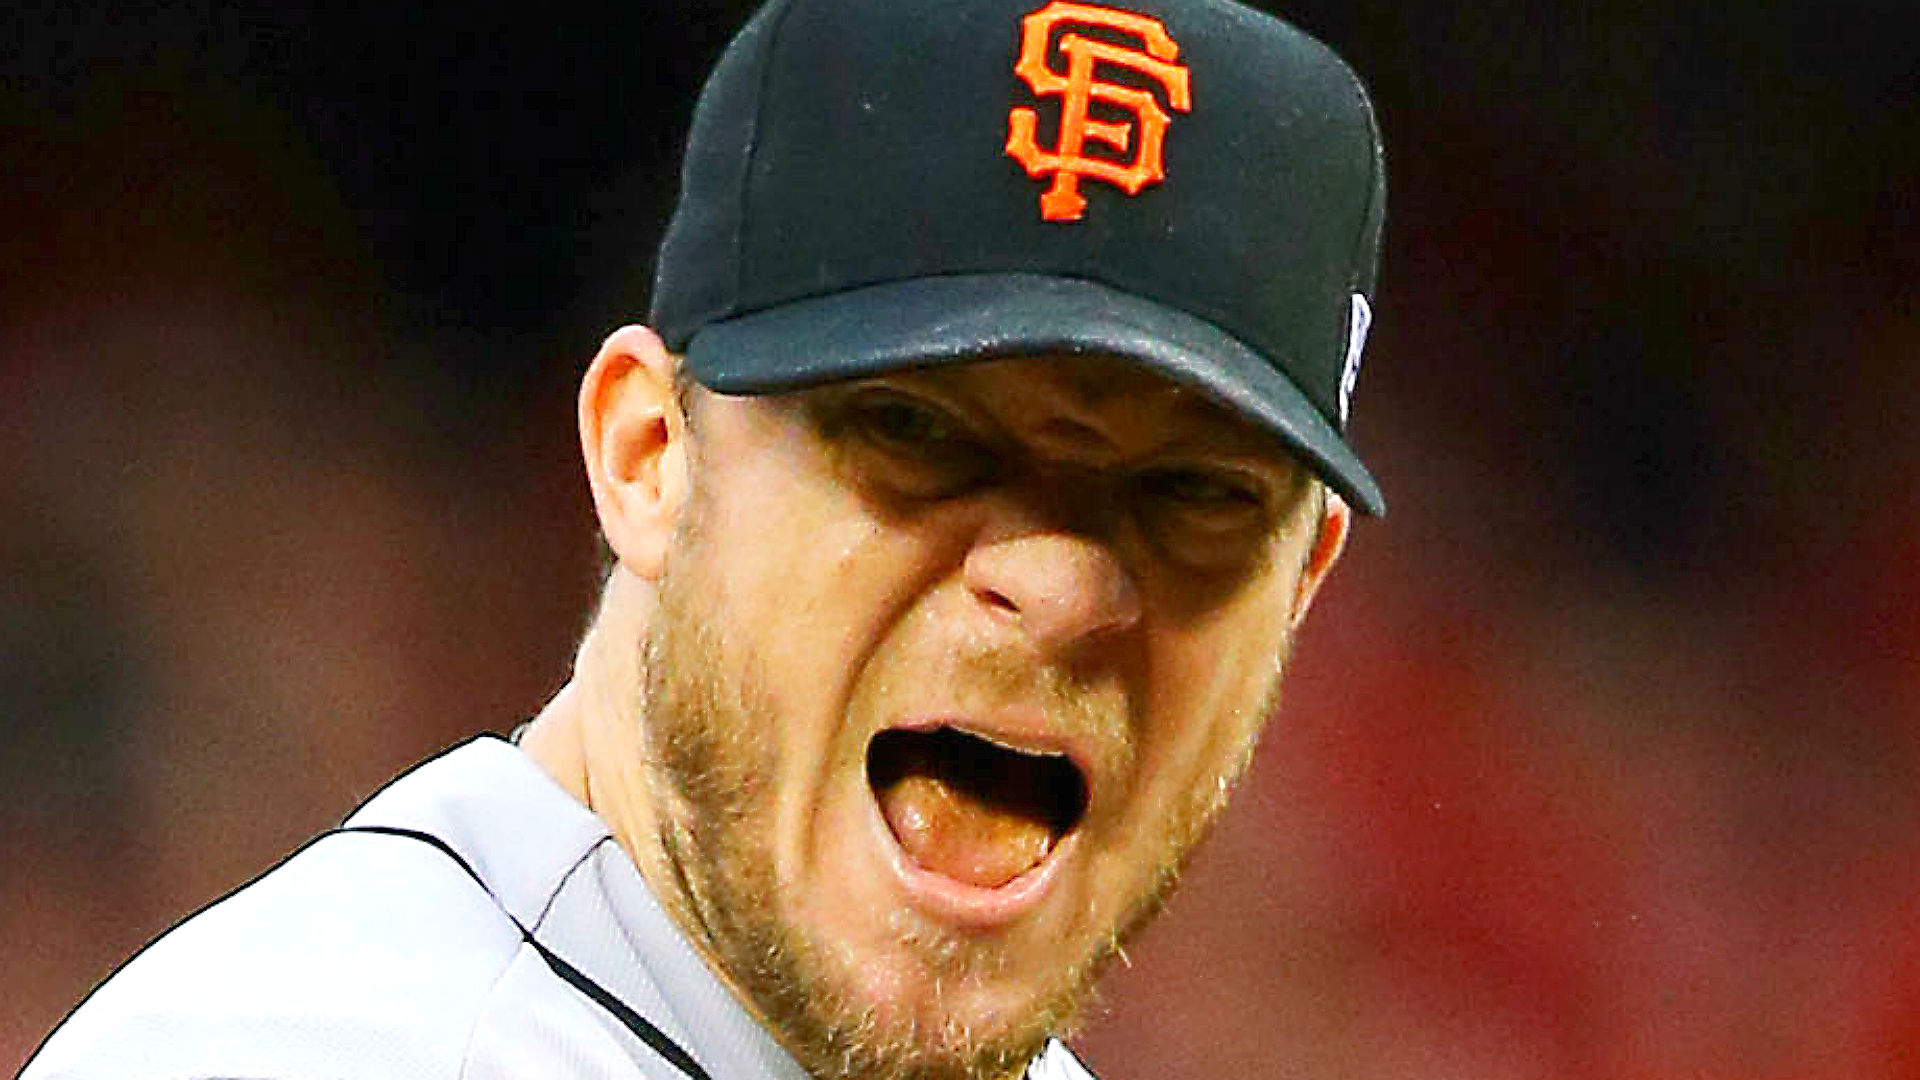 AccuScore's World Series Game 6 prediction – Giants worth a play to close deal